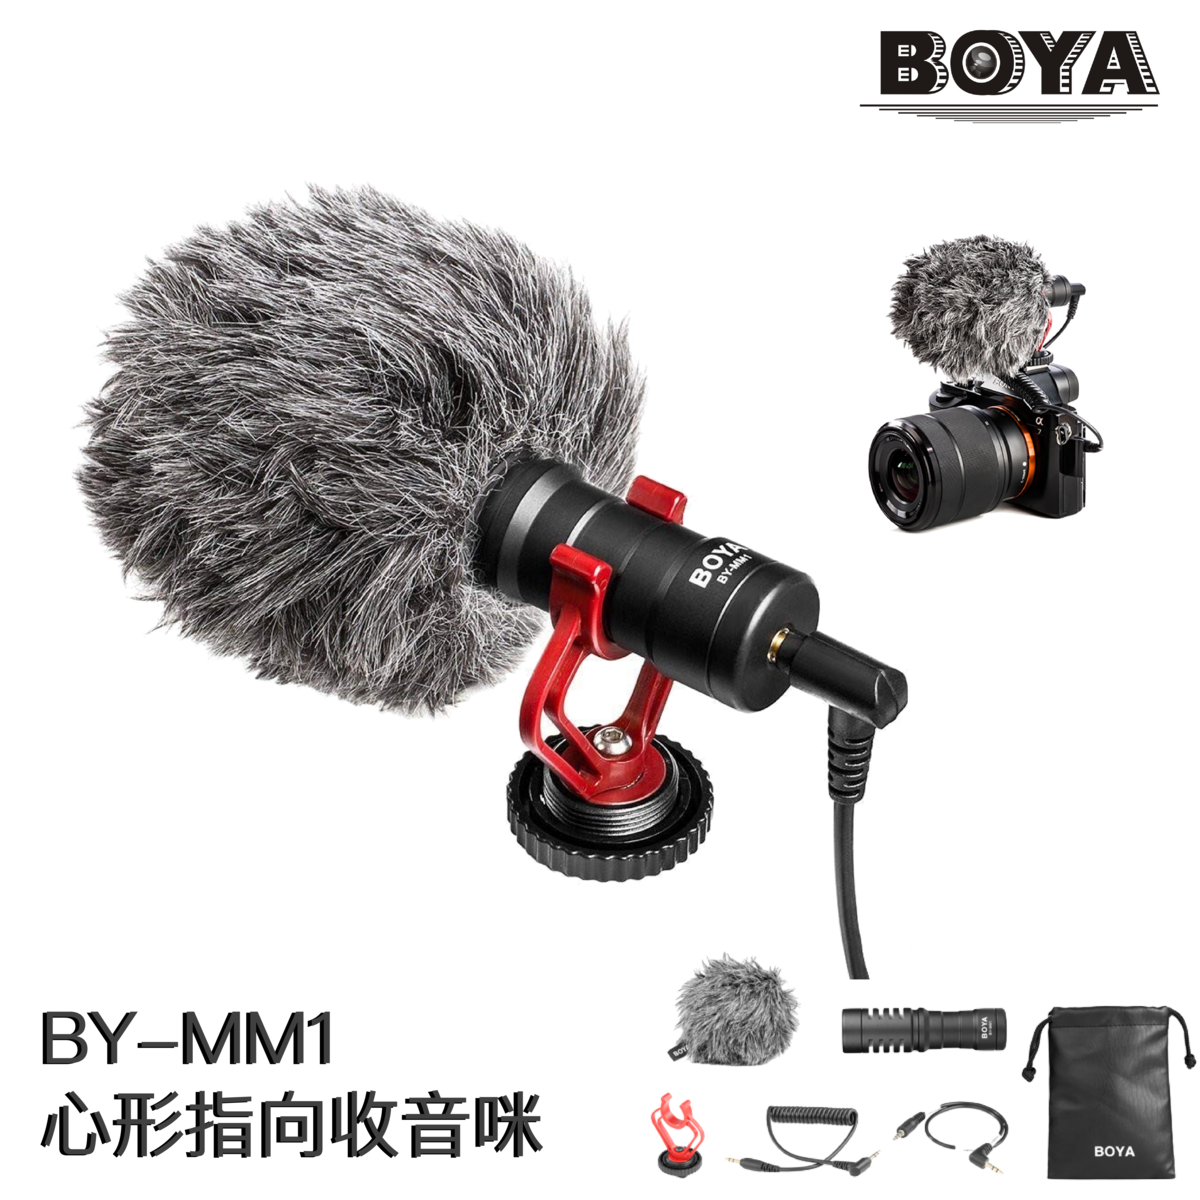 Boya 3 5mm Trs Cardioid Microphone By Mm1 Hktvmall Online Shopping